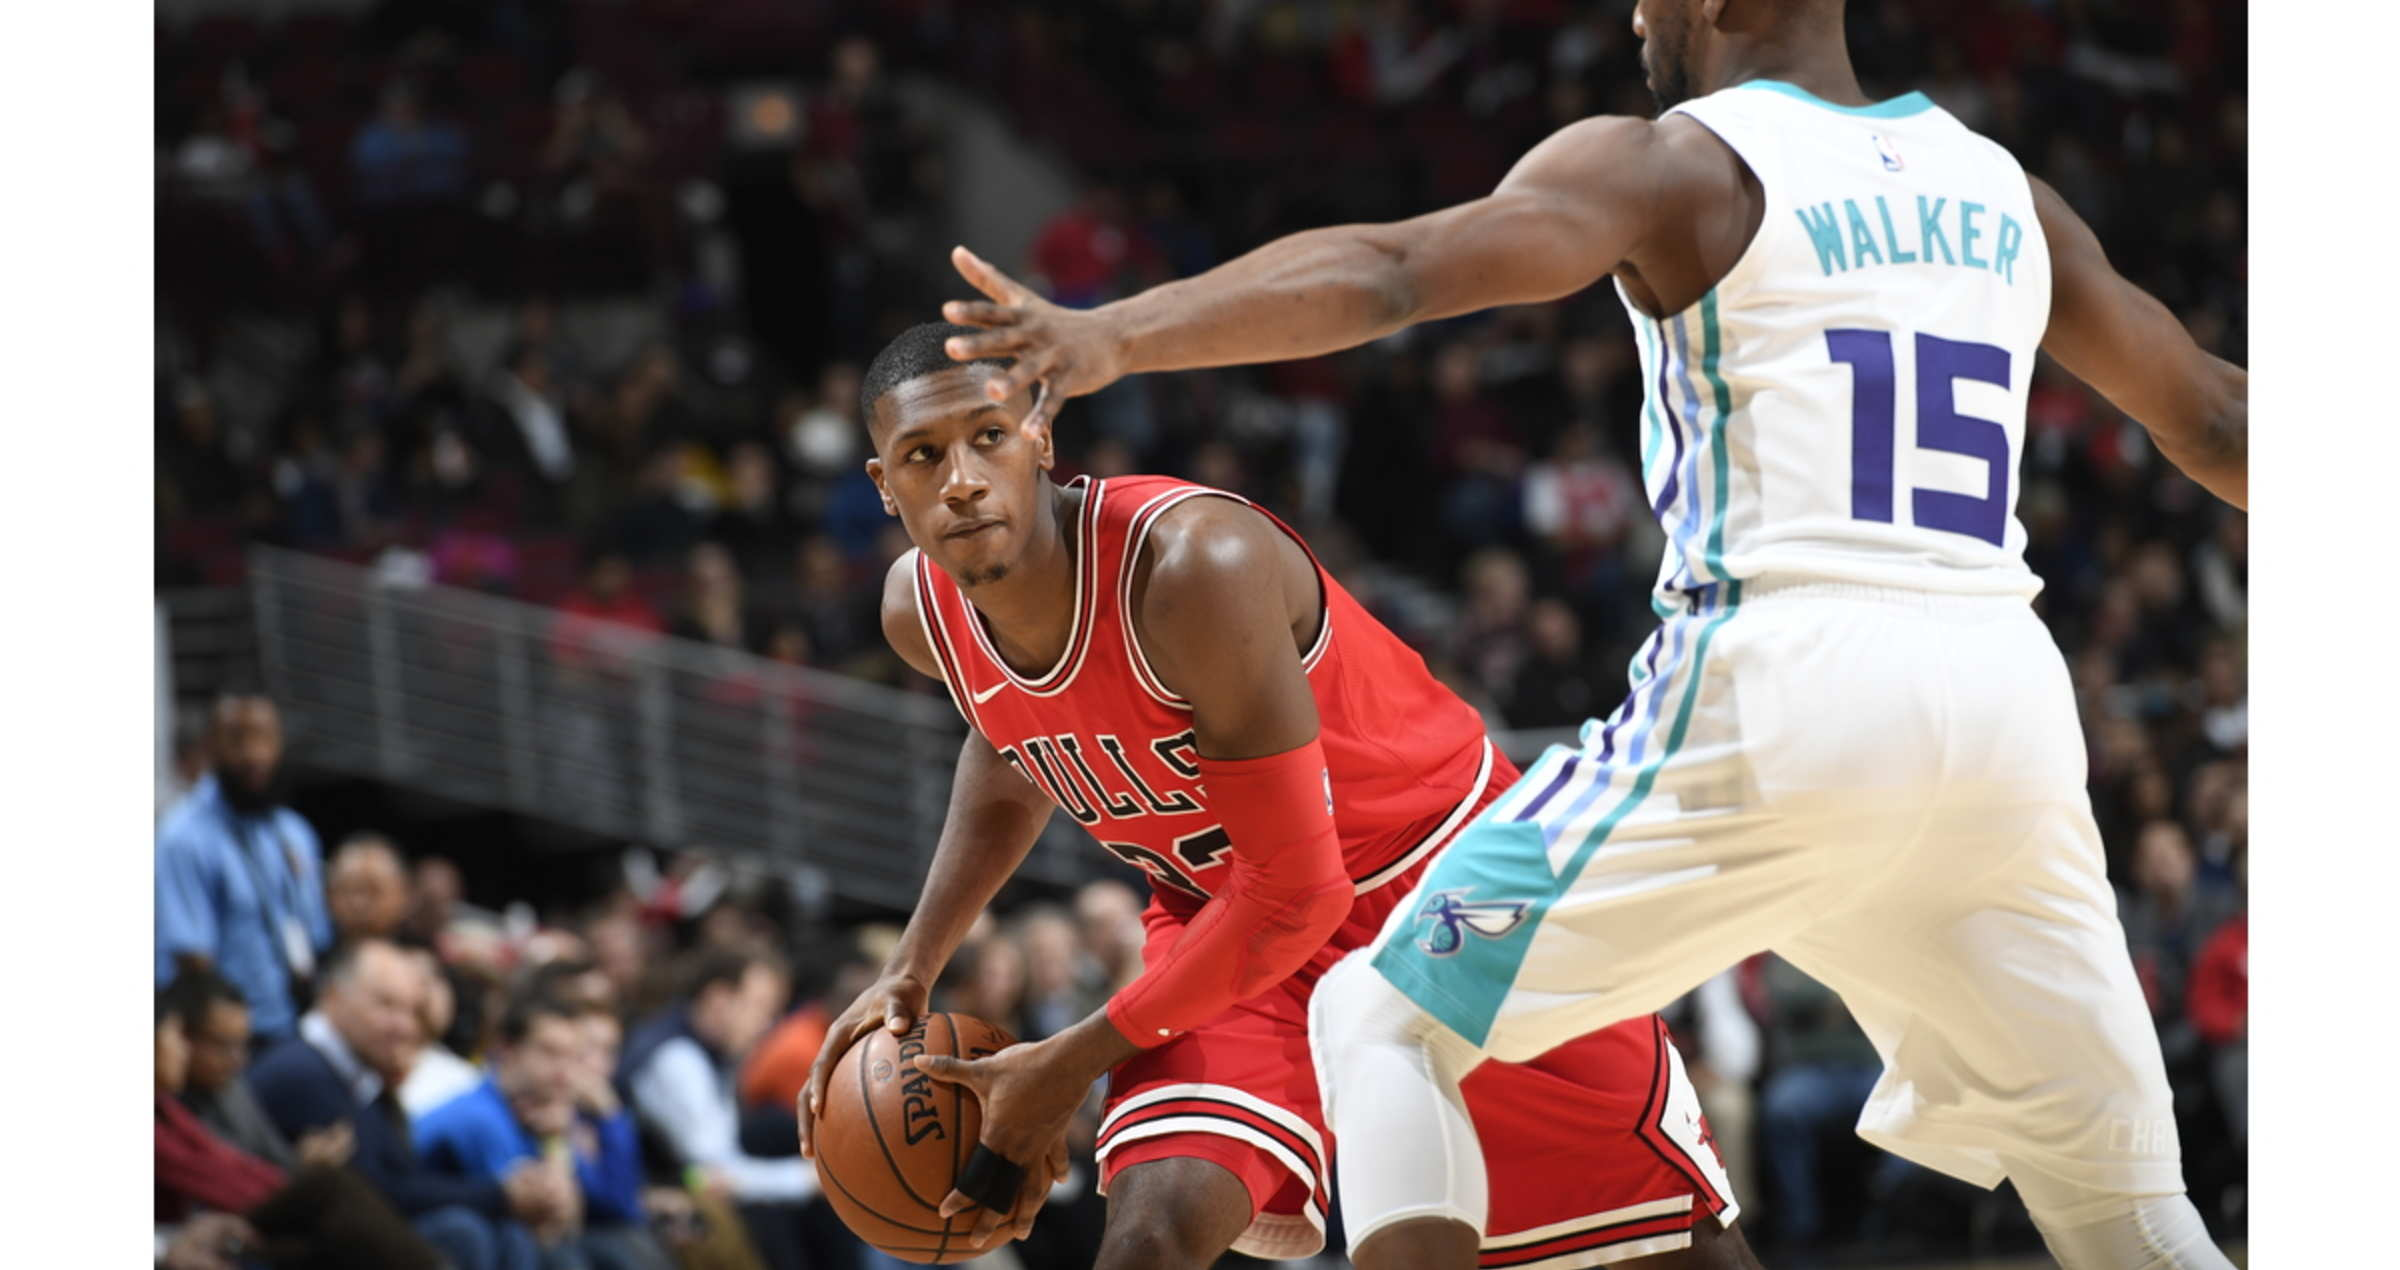 Kris Dunn looks to pass around Kemba Walker